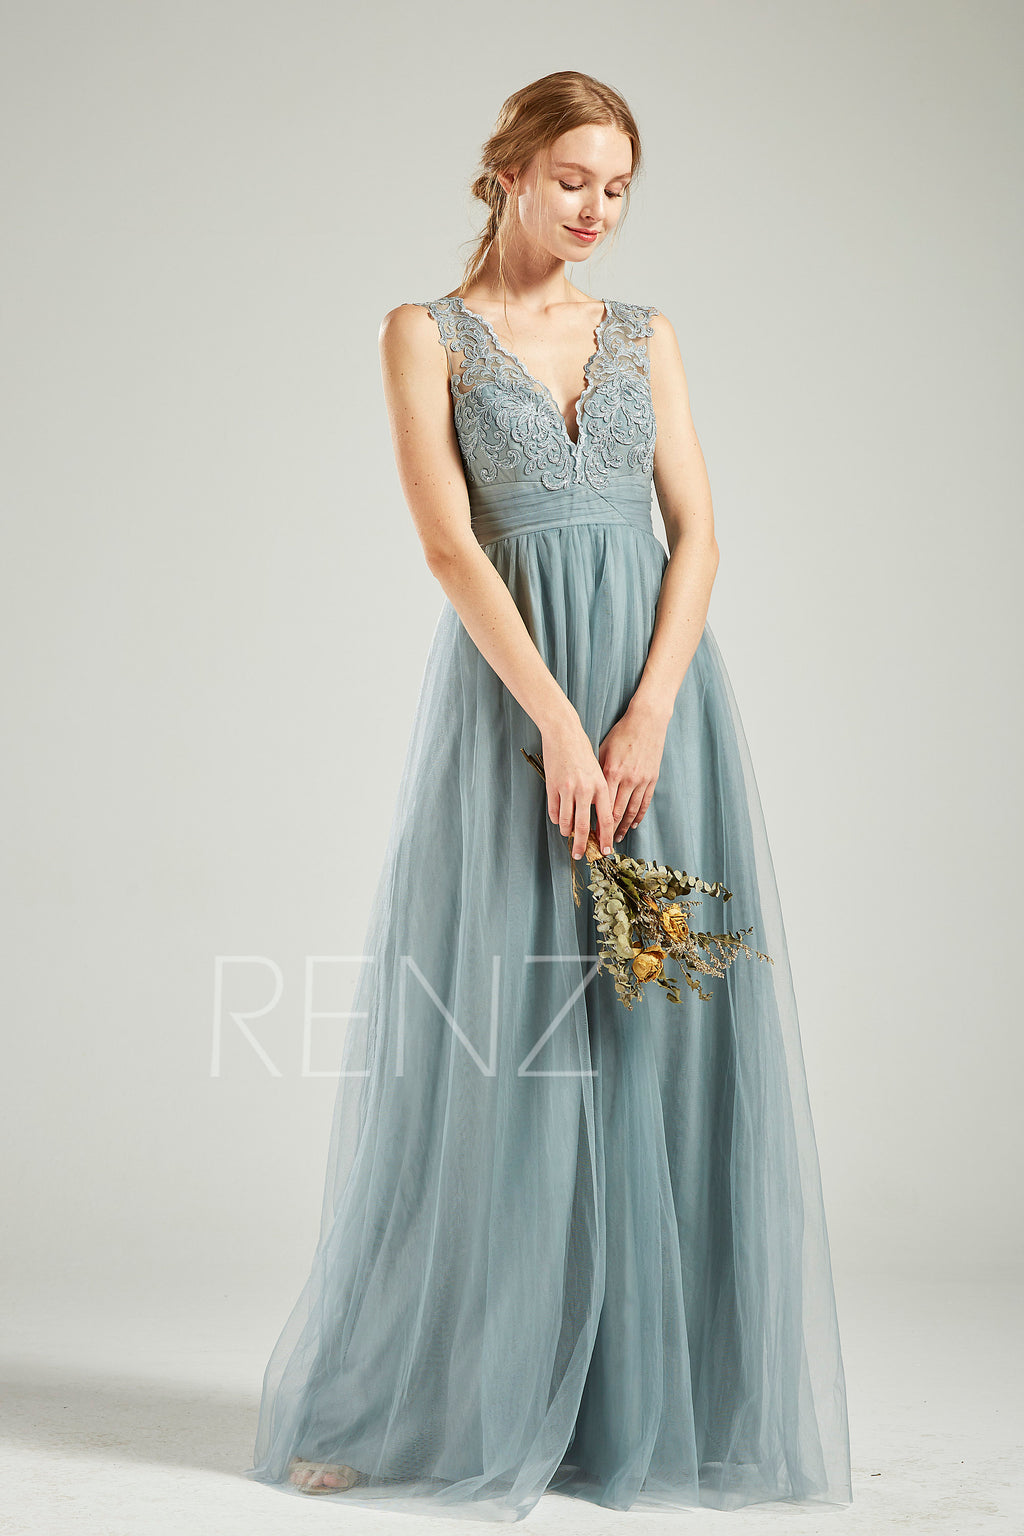 Dusty Blue Tulle Bridesmaid Dress Wedding Dress V Neck Sleeveless Maxi Dress Long Party Dress Illusion Lace Back A-line Prom Dress(HS731)